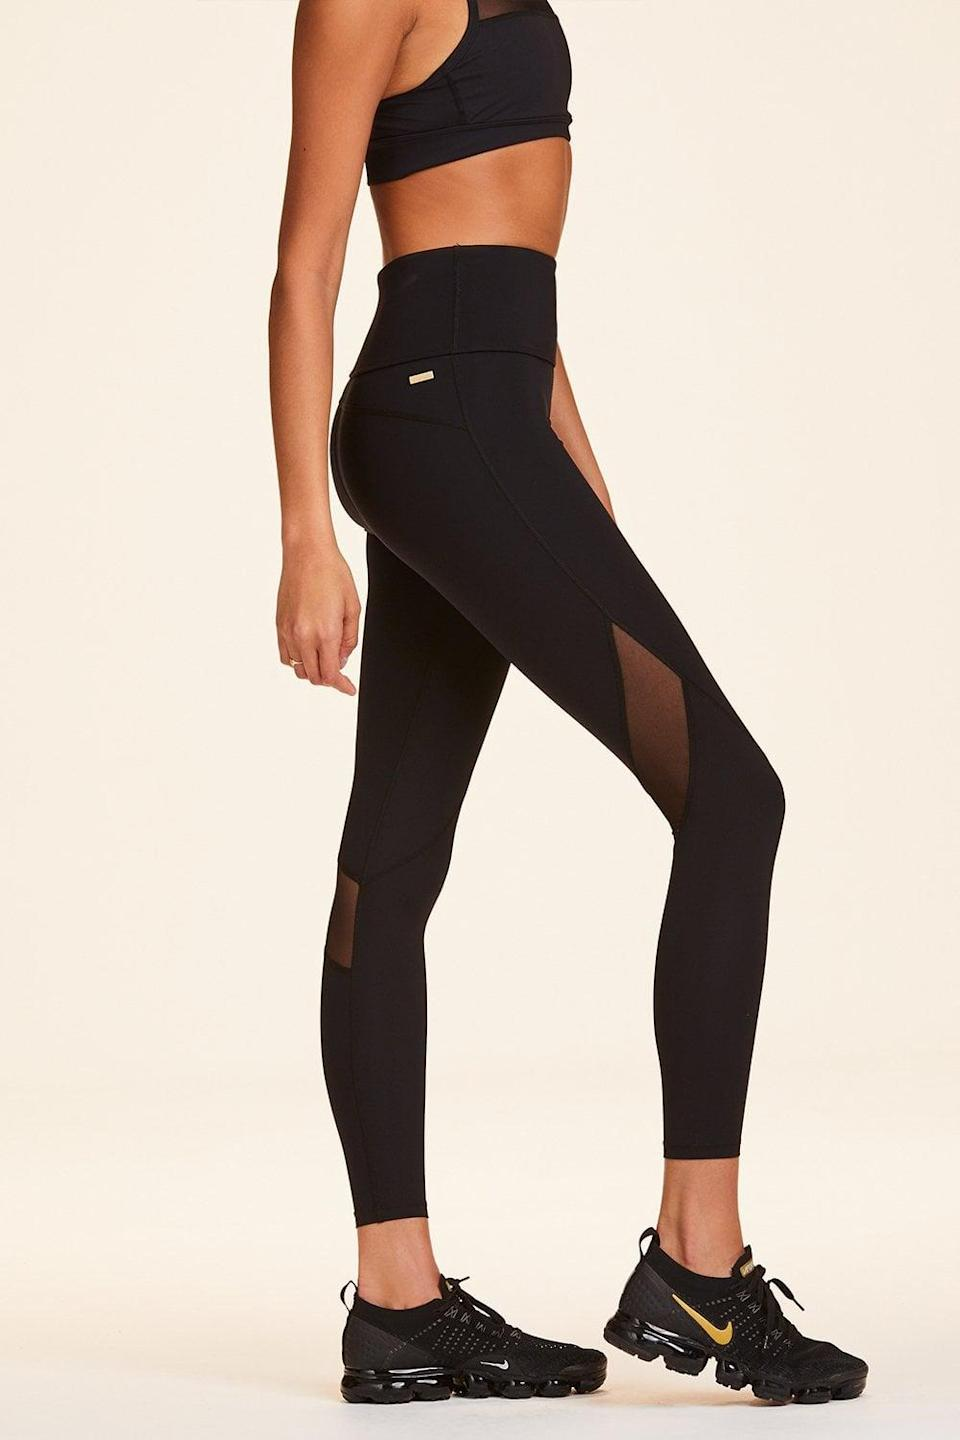 <p>The <span>Alala Compression 7/8 Captain Tight</span> ($125) is designed to improve circulation and aid in muscle recovery. Duckstein told POPSUGAR that these are some of the best leggings Pilates enthusiasts can buy because they don't budge even during difficult poses.</p>